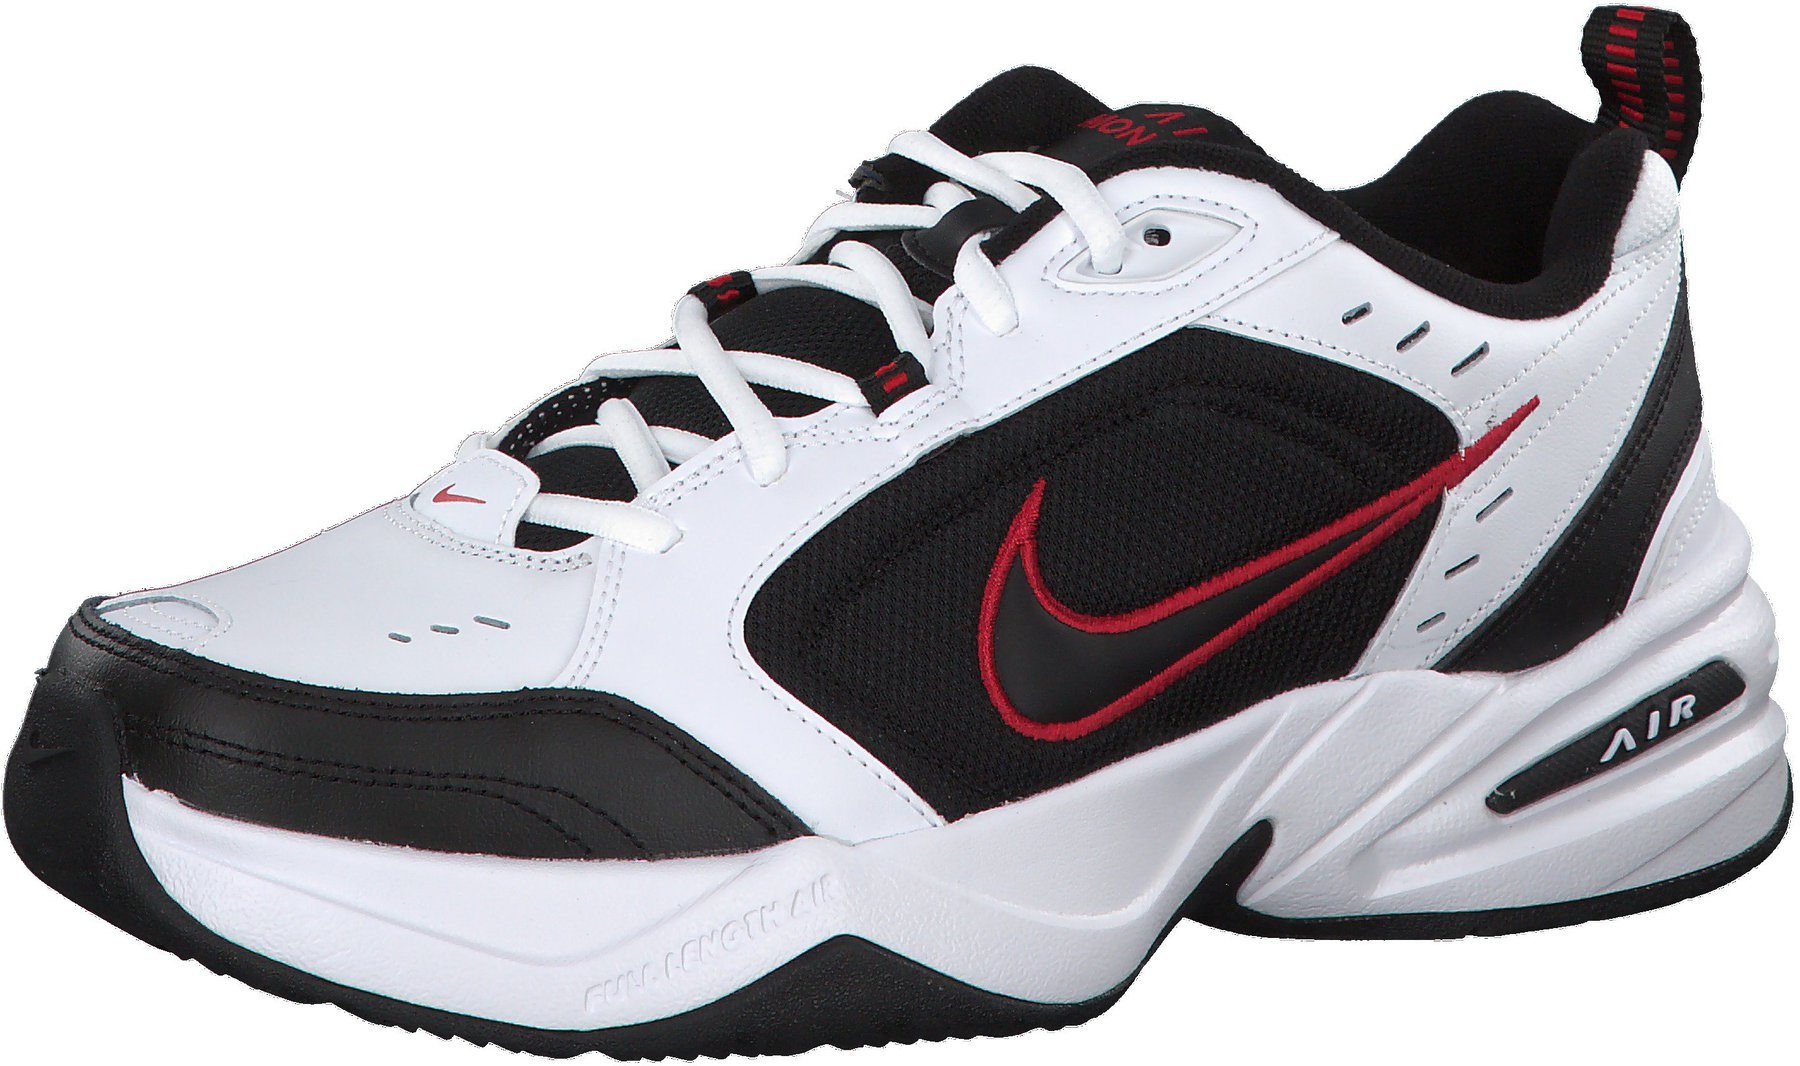 Nike Air Monarch IV white/black/varsity red